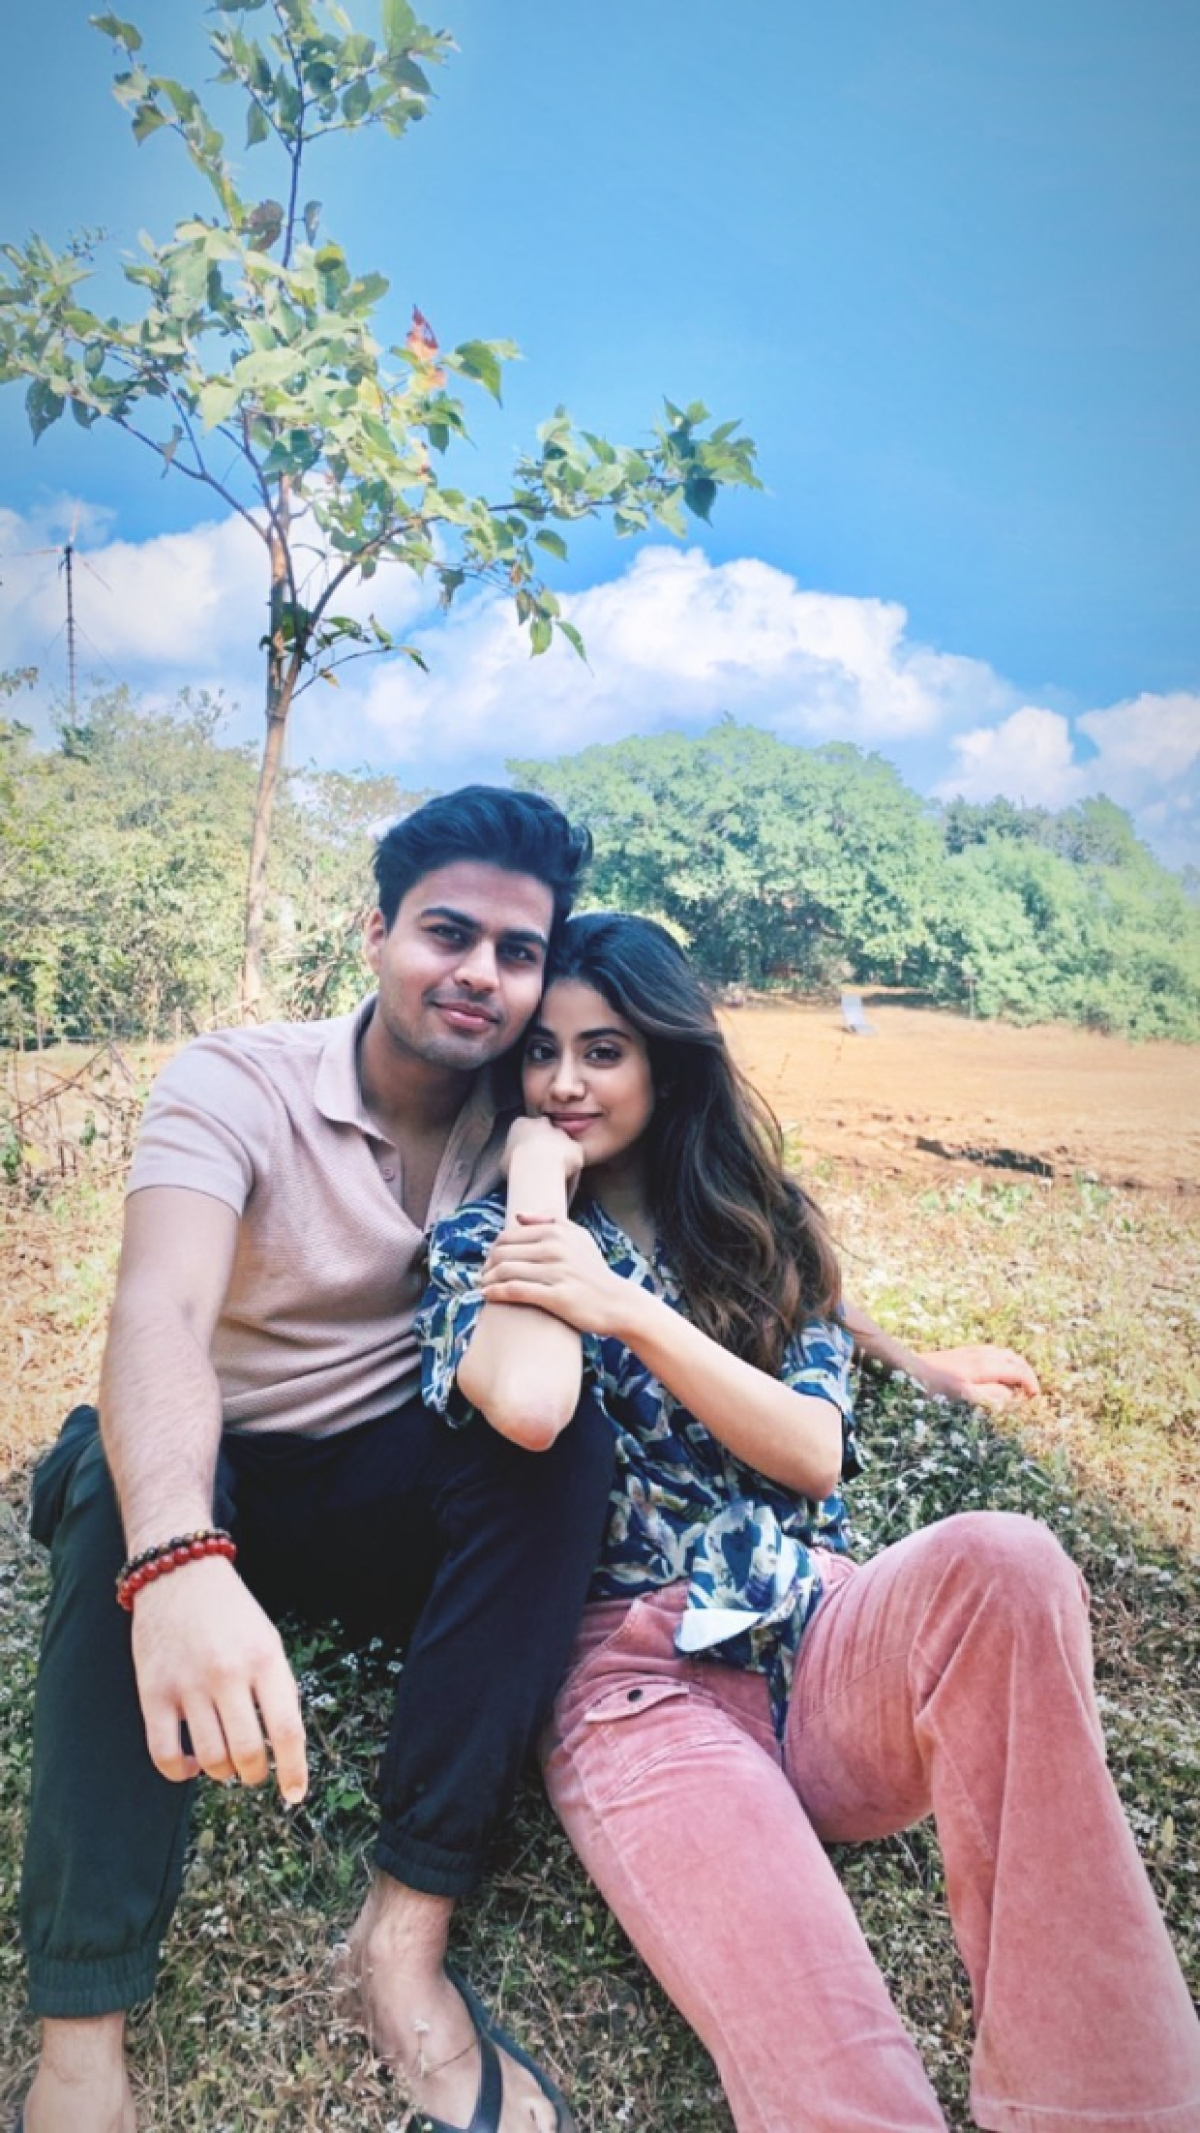 Love is in the air: Janhvi Kapoor heads for a getaway with alleged beau Akshat Rajan